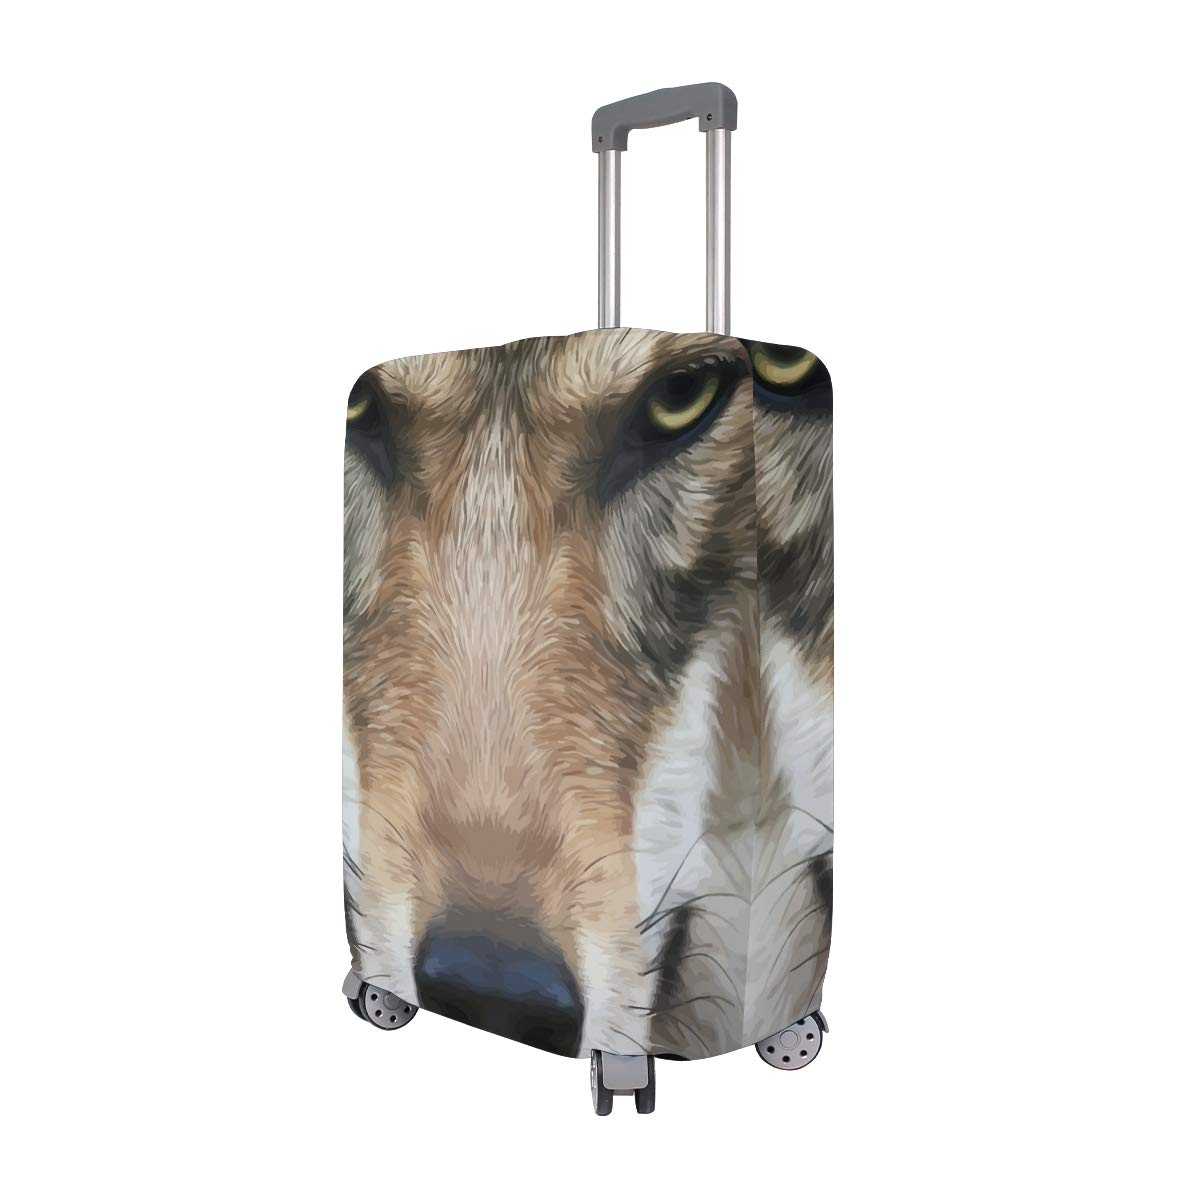 Baggage Covers Horrible Wolf Face Staring Animal Washable Protective Case